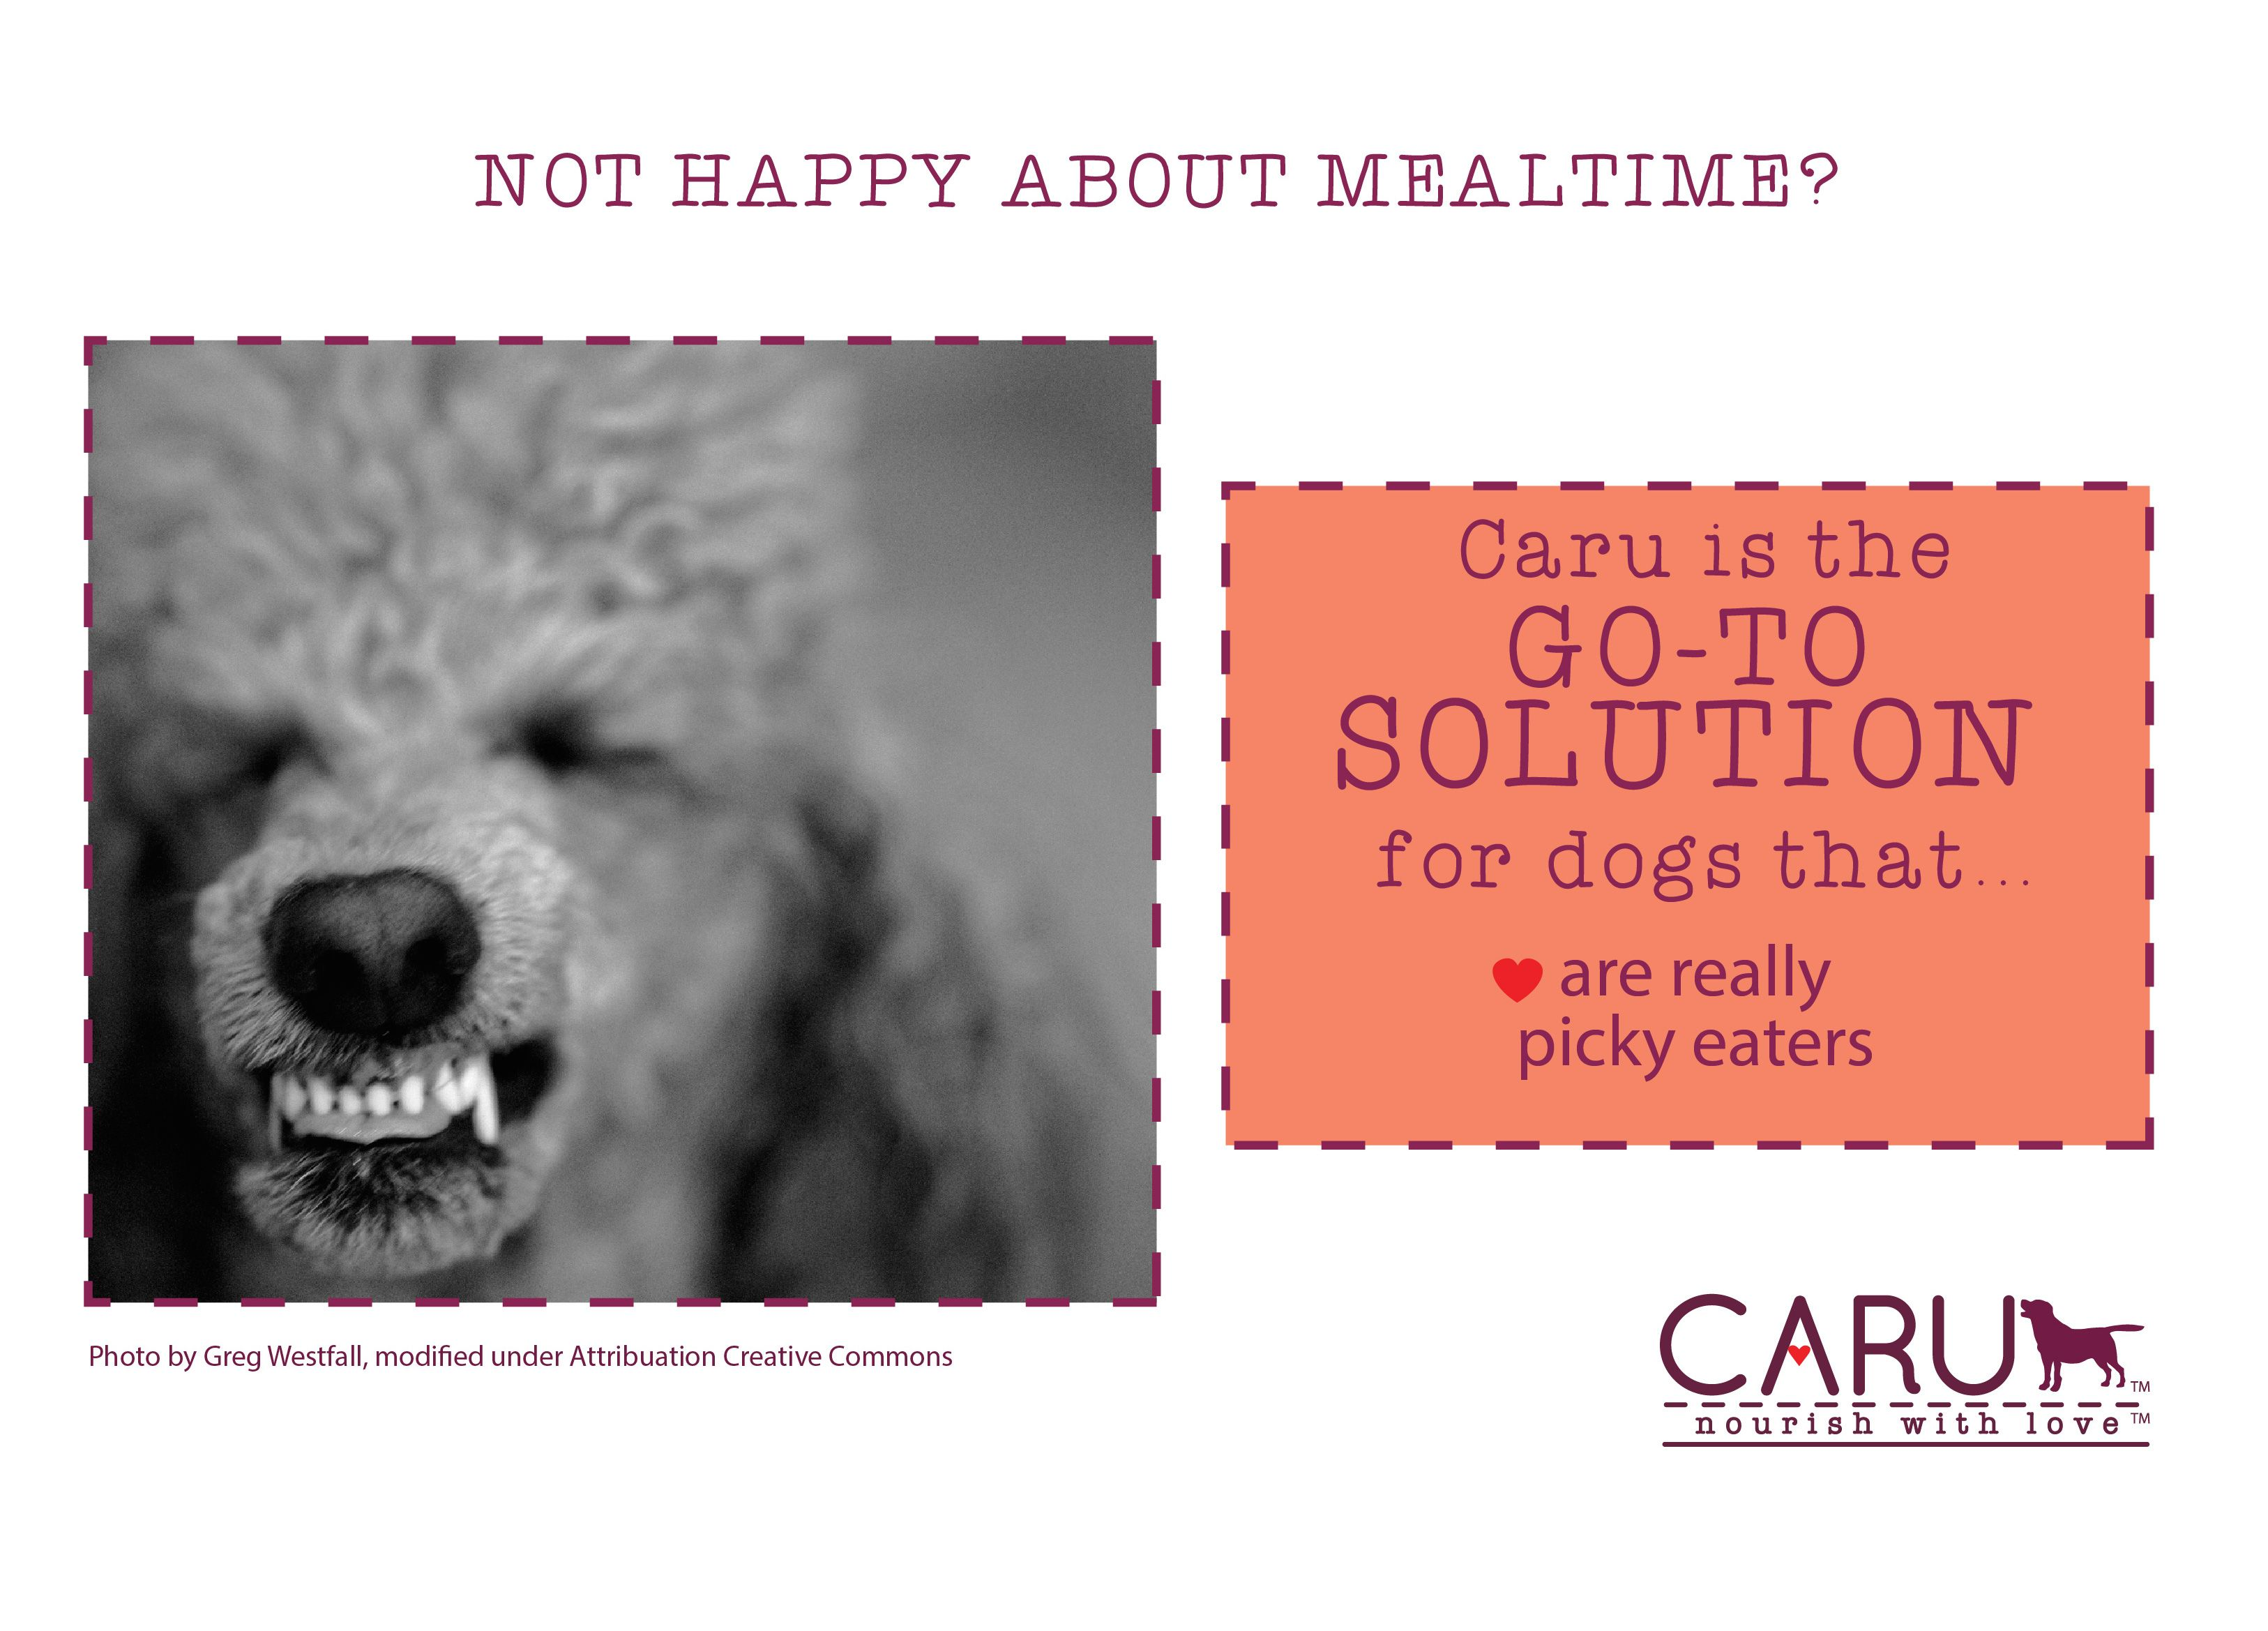 CARU is your Go-To Solution for Dogs that are Really Picky Eaters! Learn more at carupetfood.com #pickyeaters #carupetfood